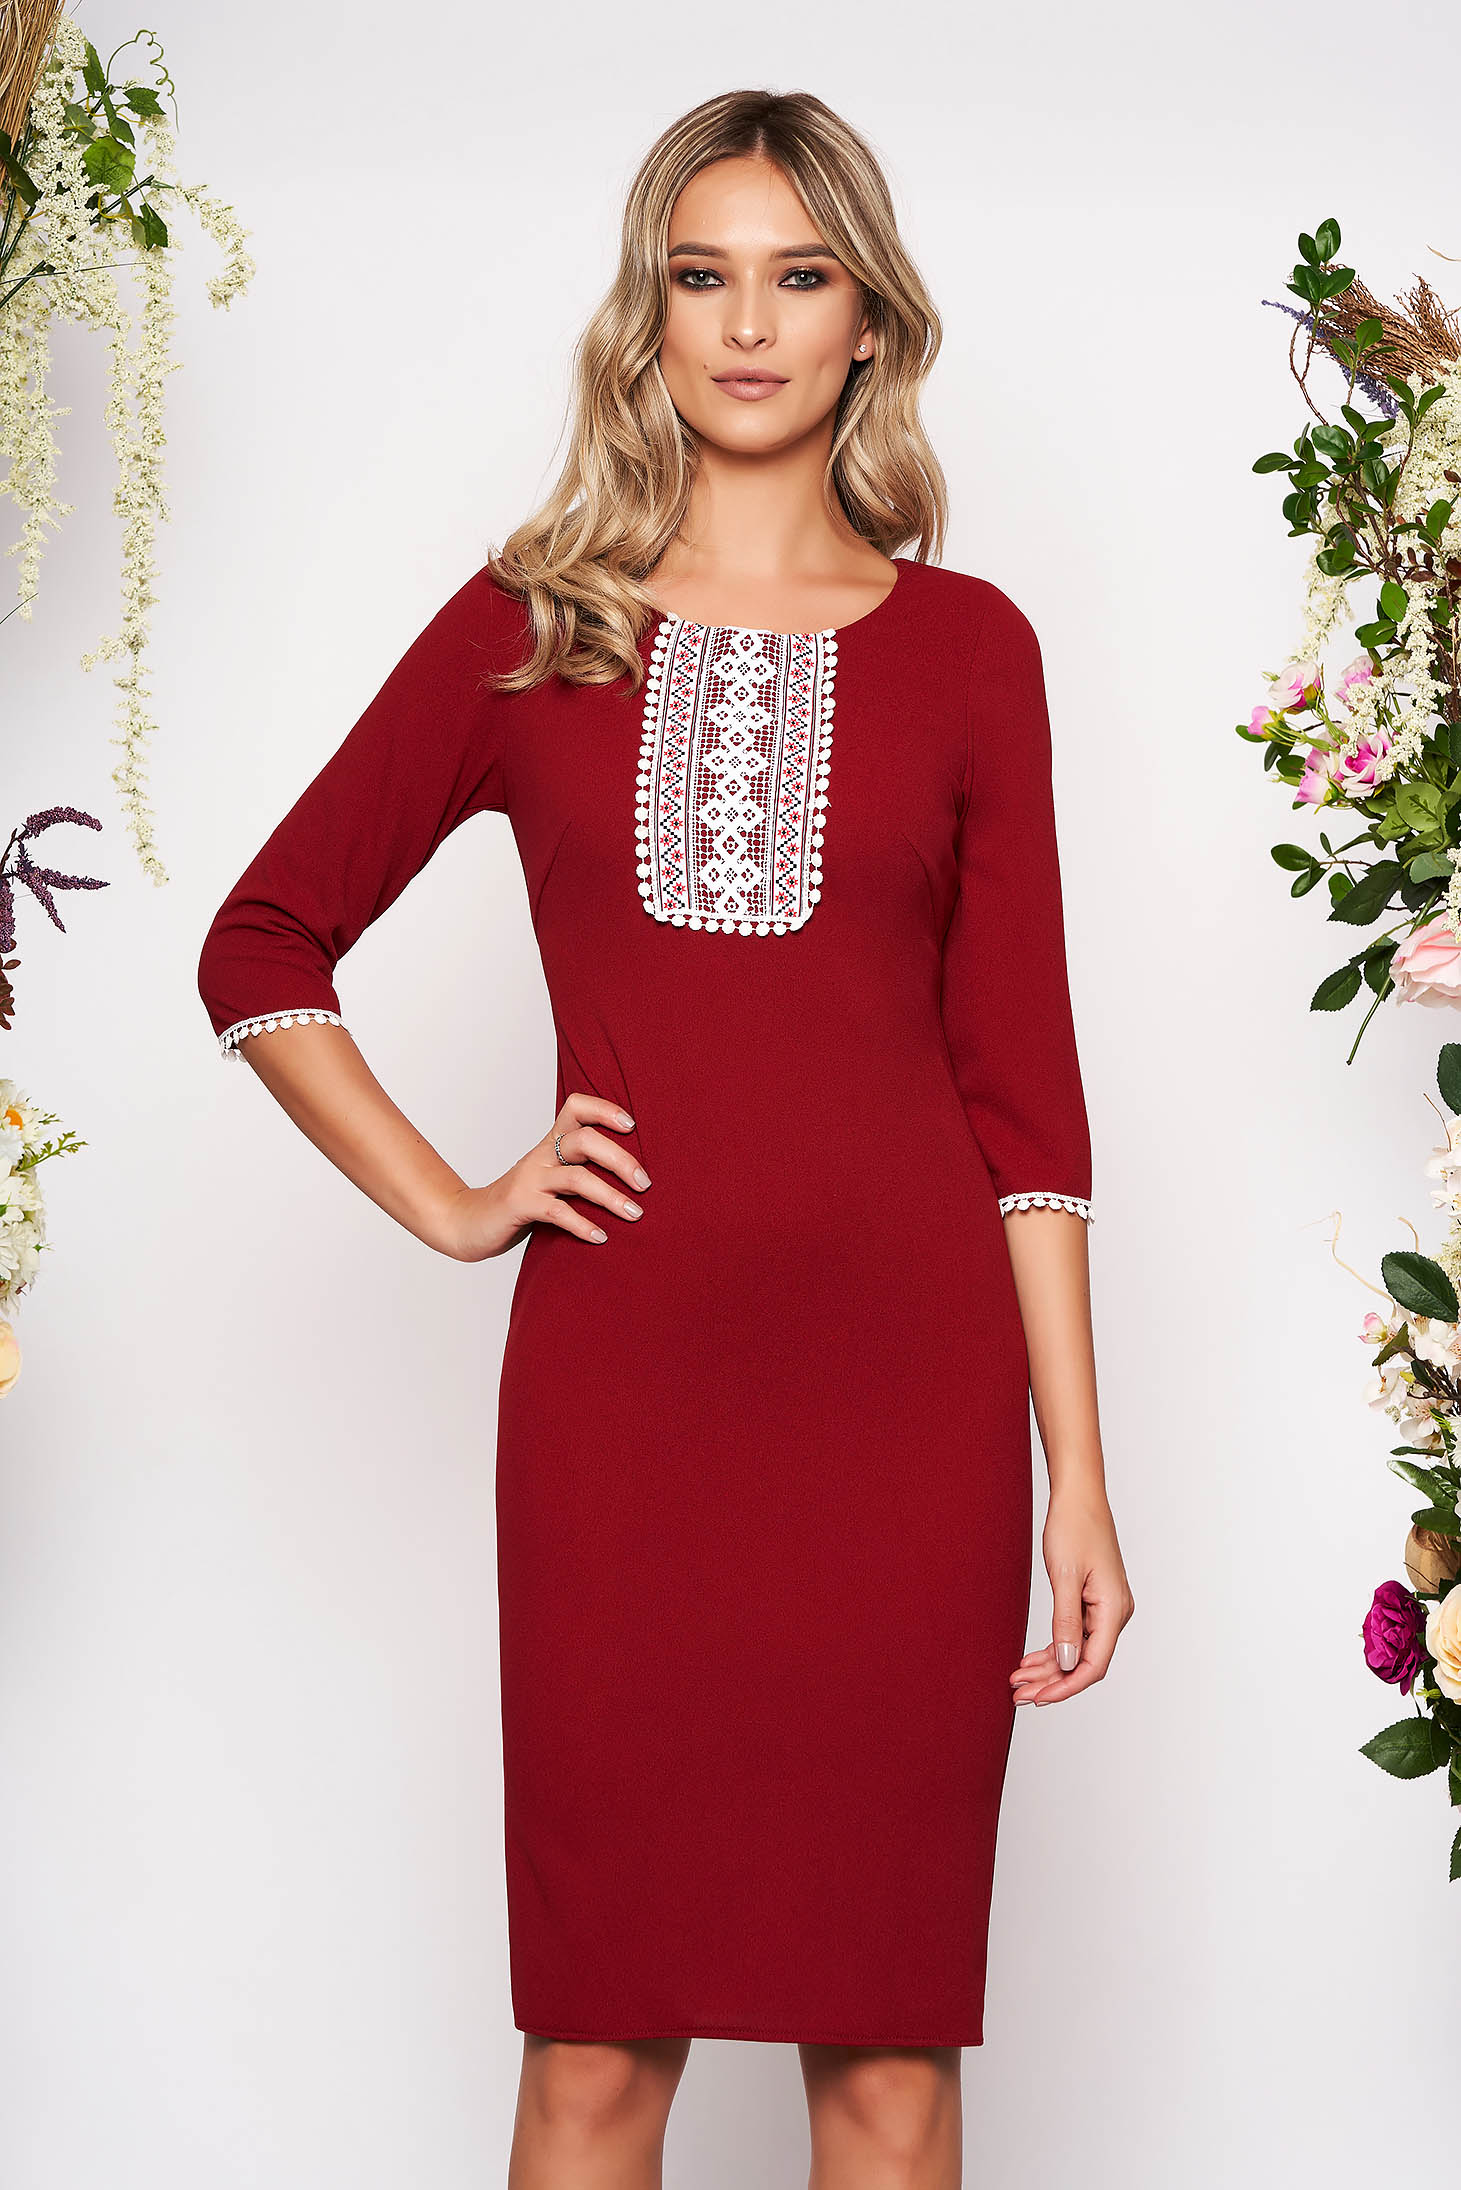 Burgundy dress elegant midi pencil cloth from elastic fabric with 3/4 sleeves with rounded cleavage